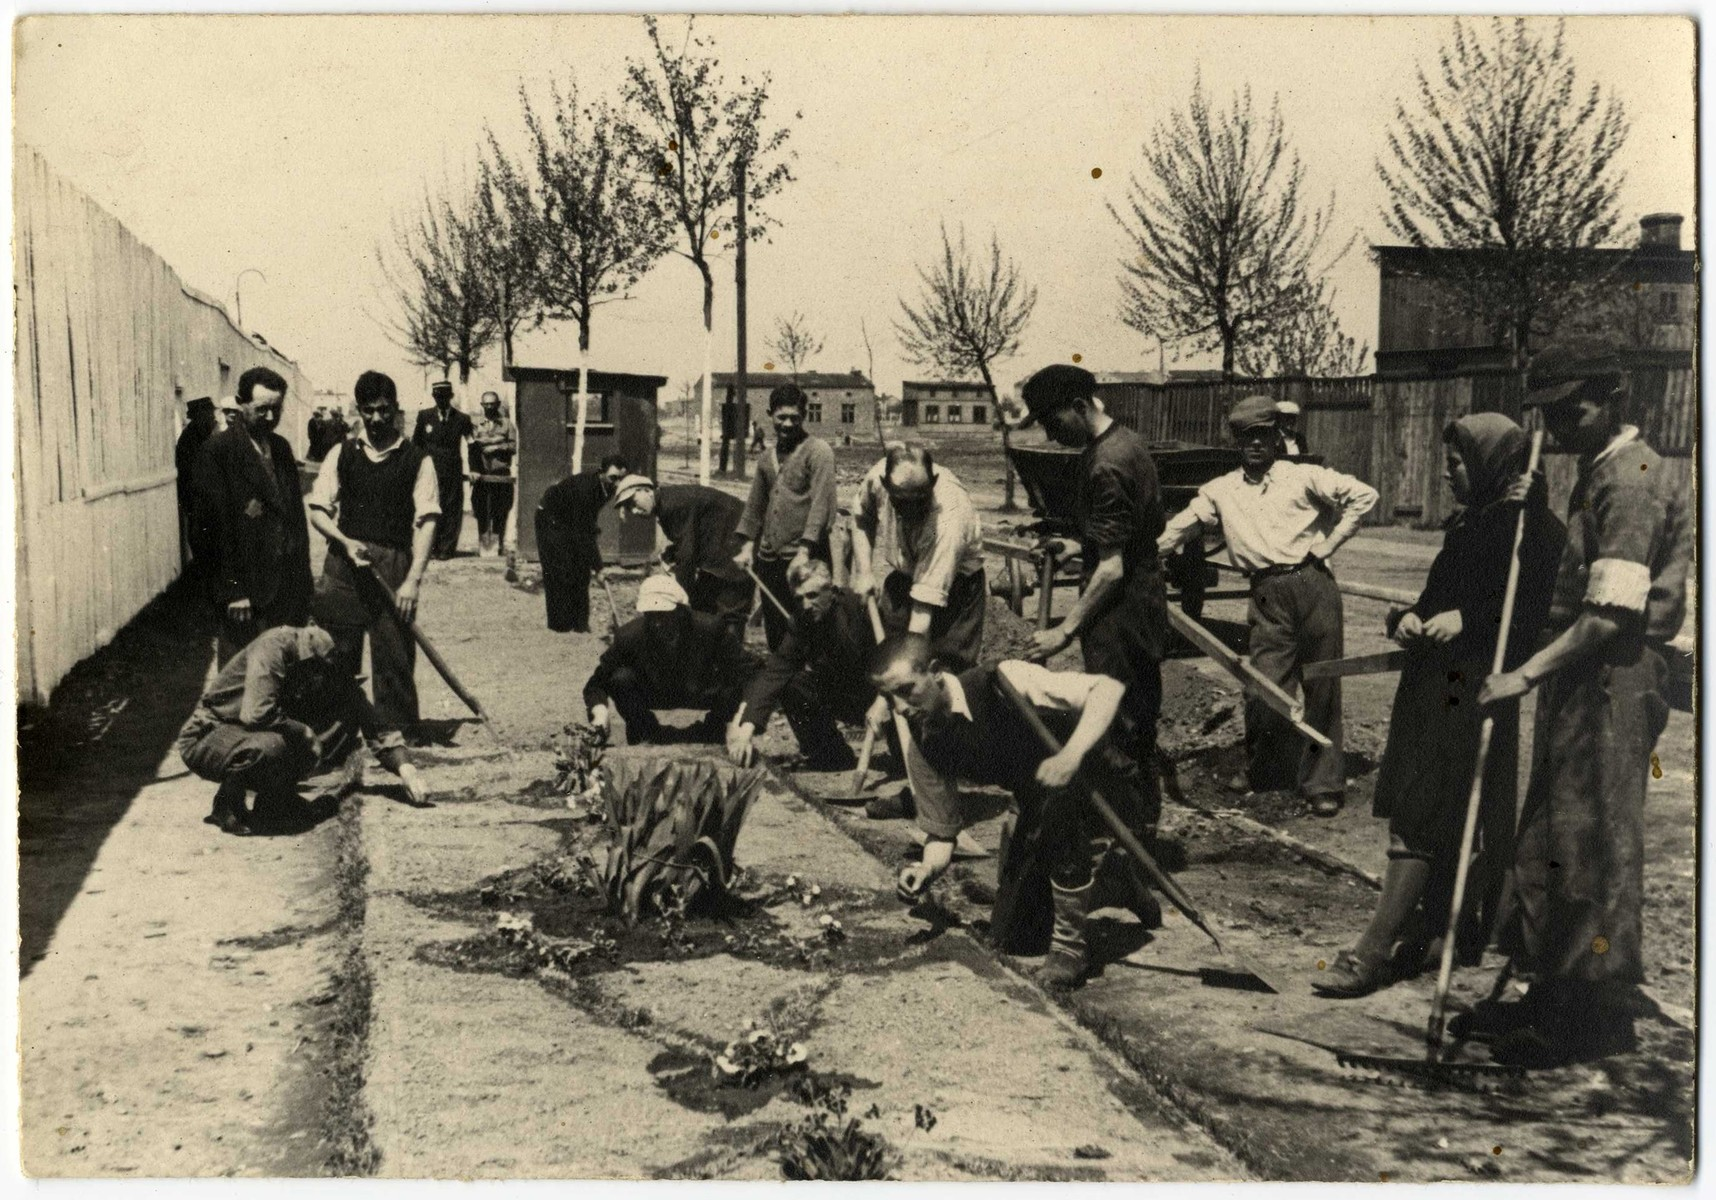 Laborers work with hoes and rakes in the Lodz ghetto.